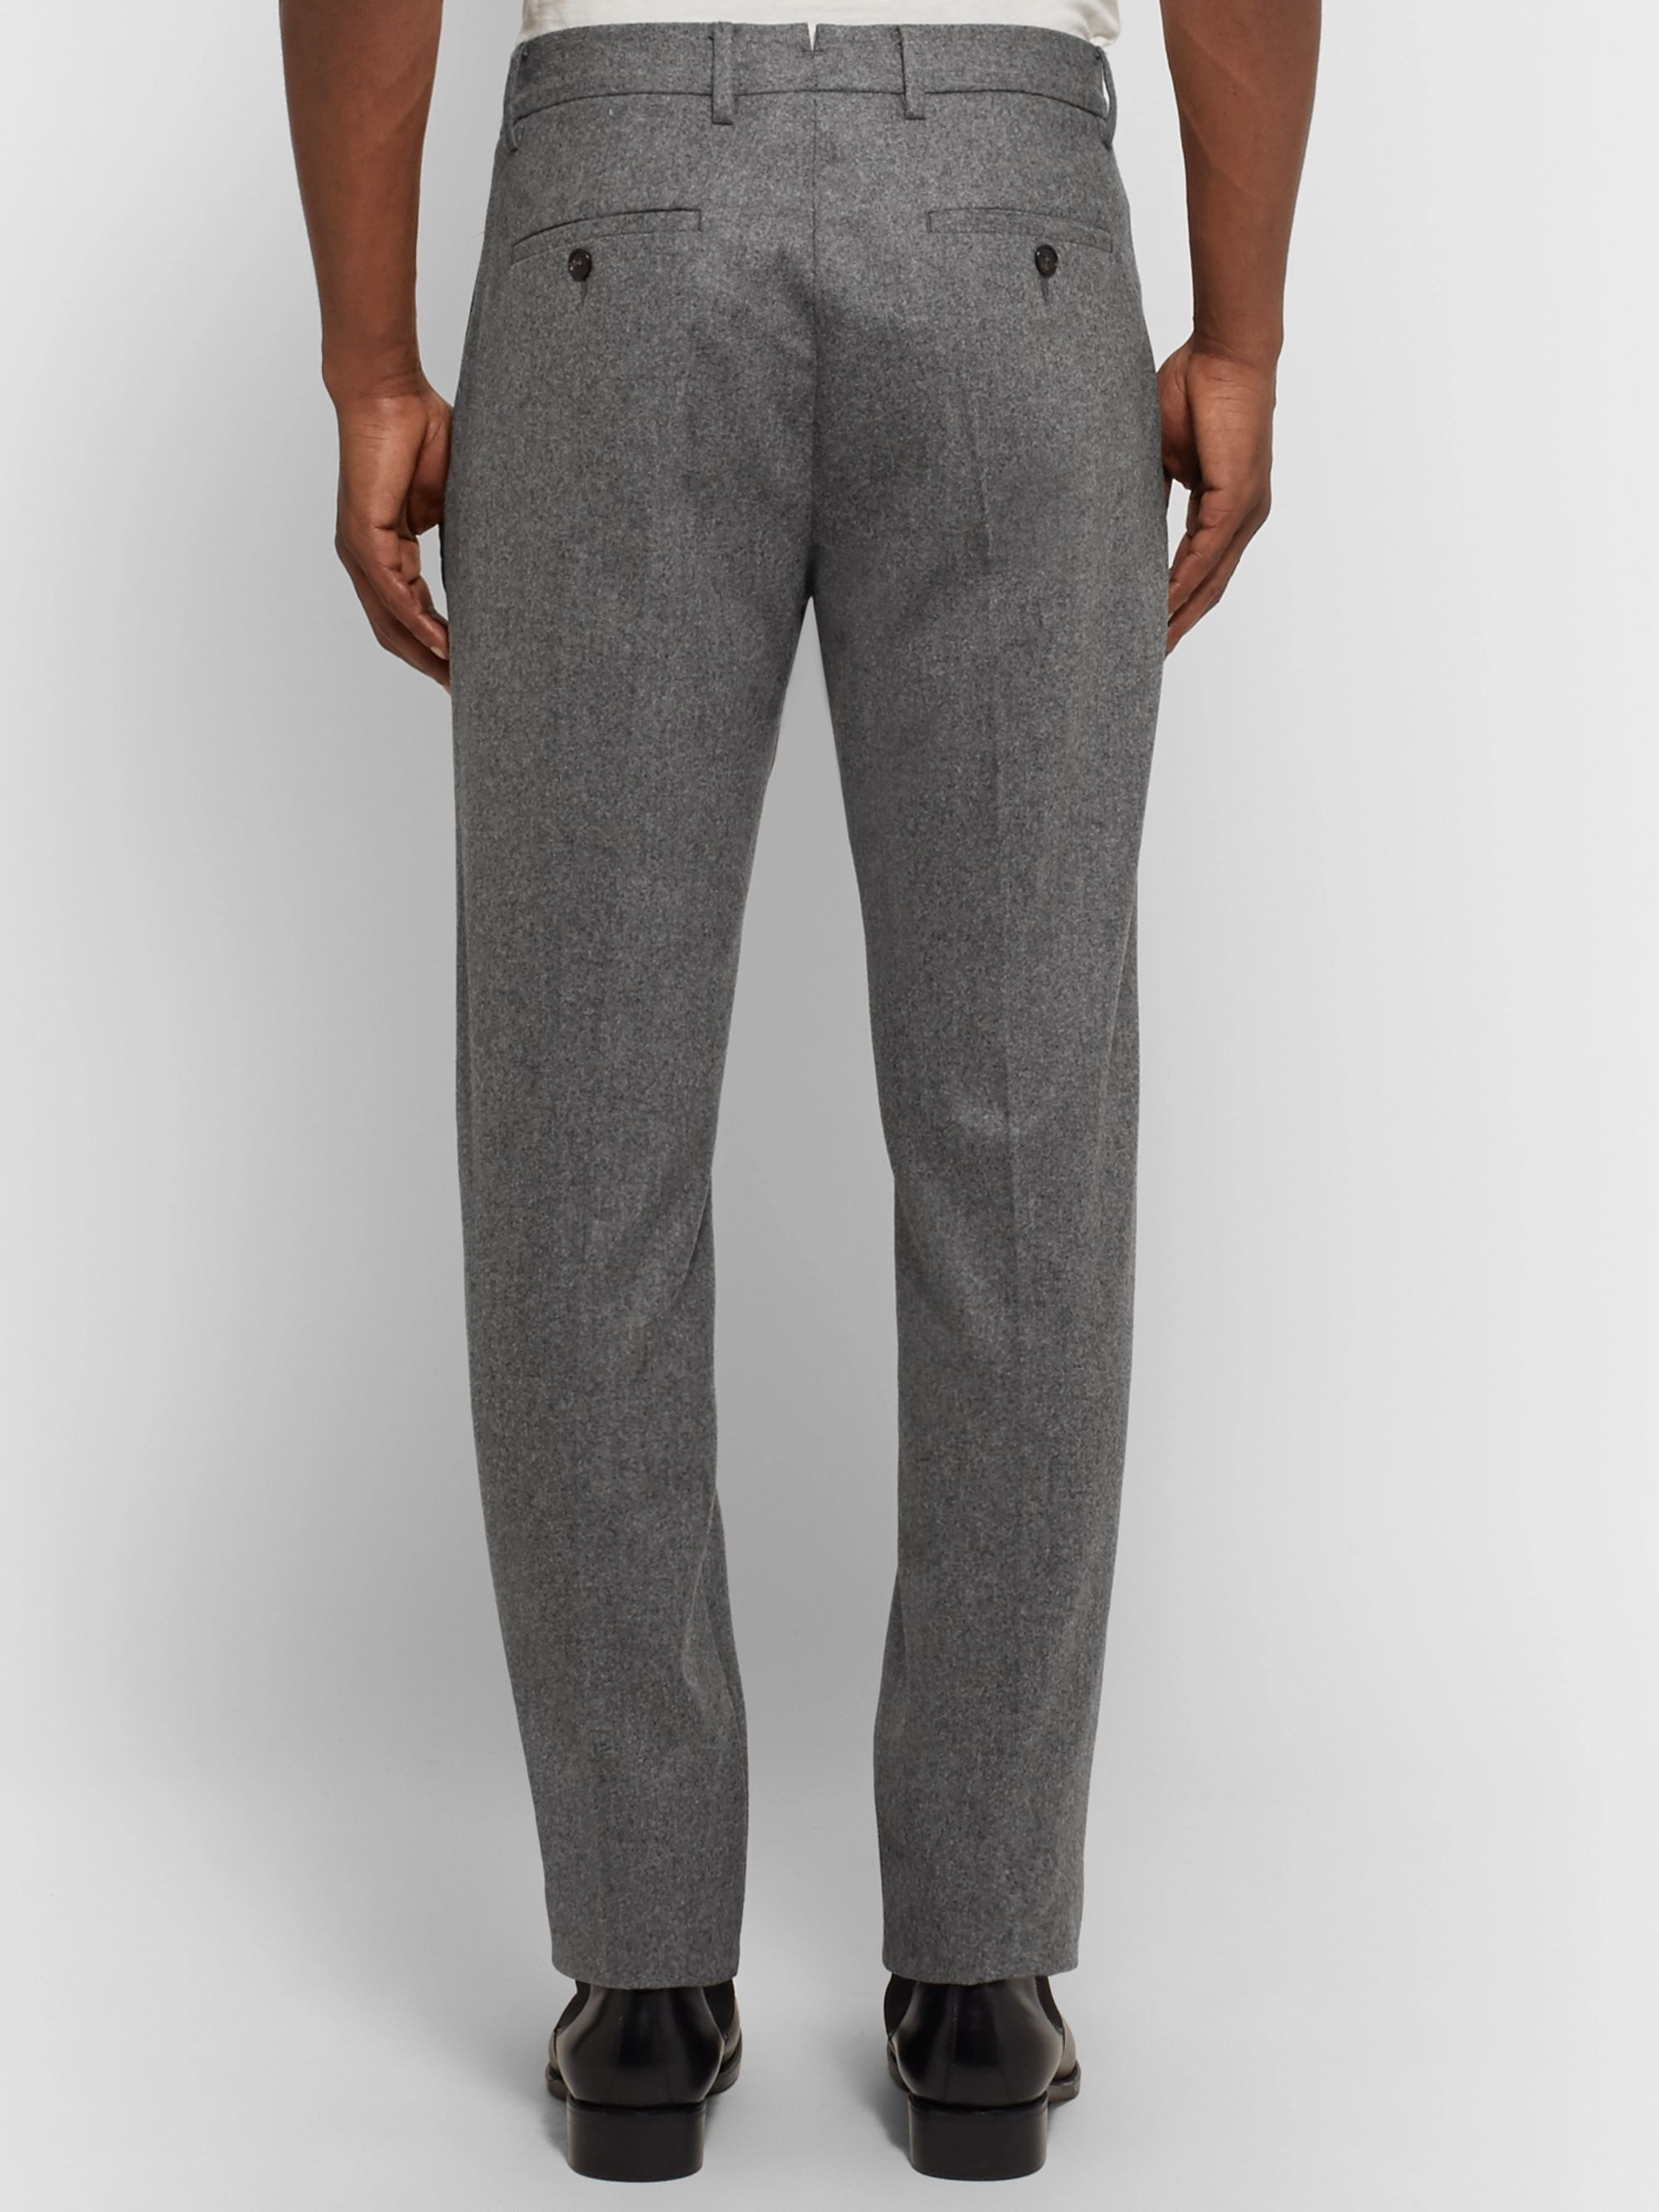 SALLE PRIVÉE Anthracite Rocco Slim-Fit Mélange Wool-Flannel Suit Trousers